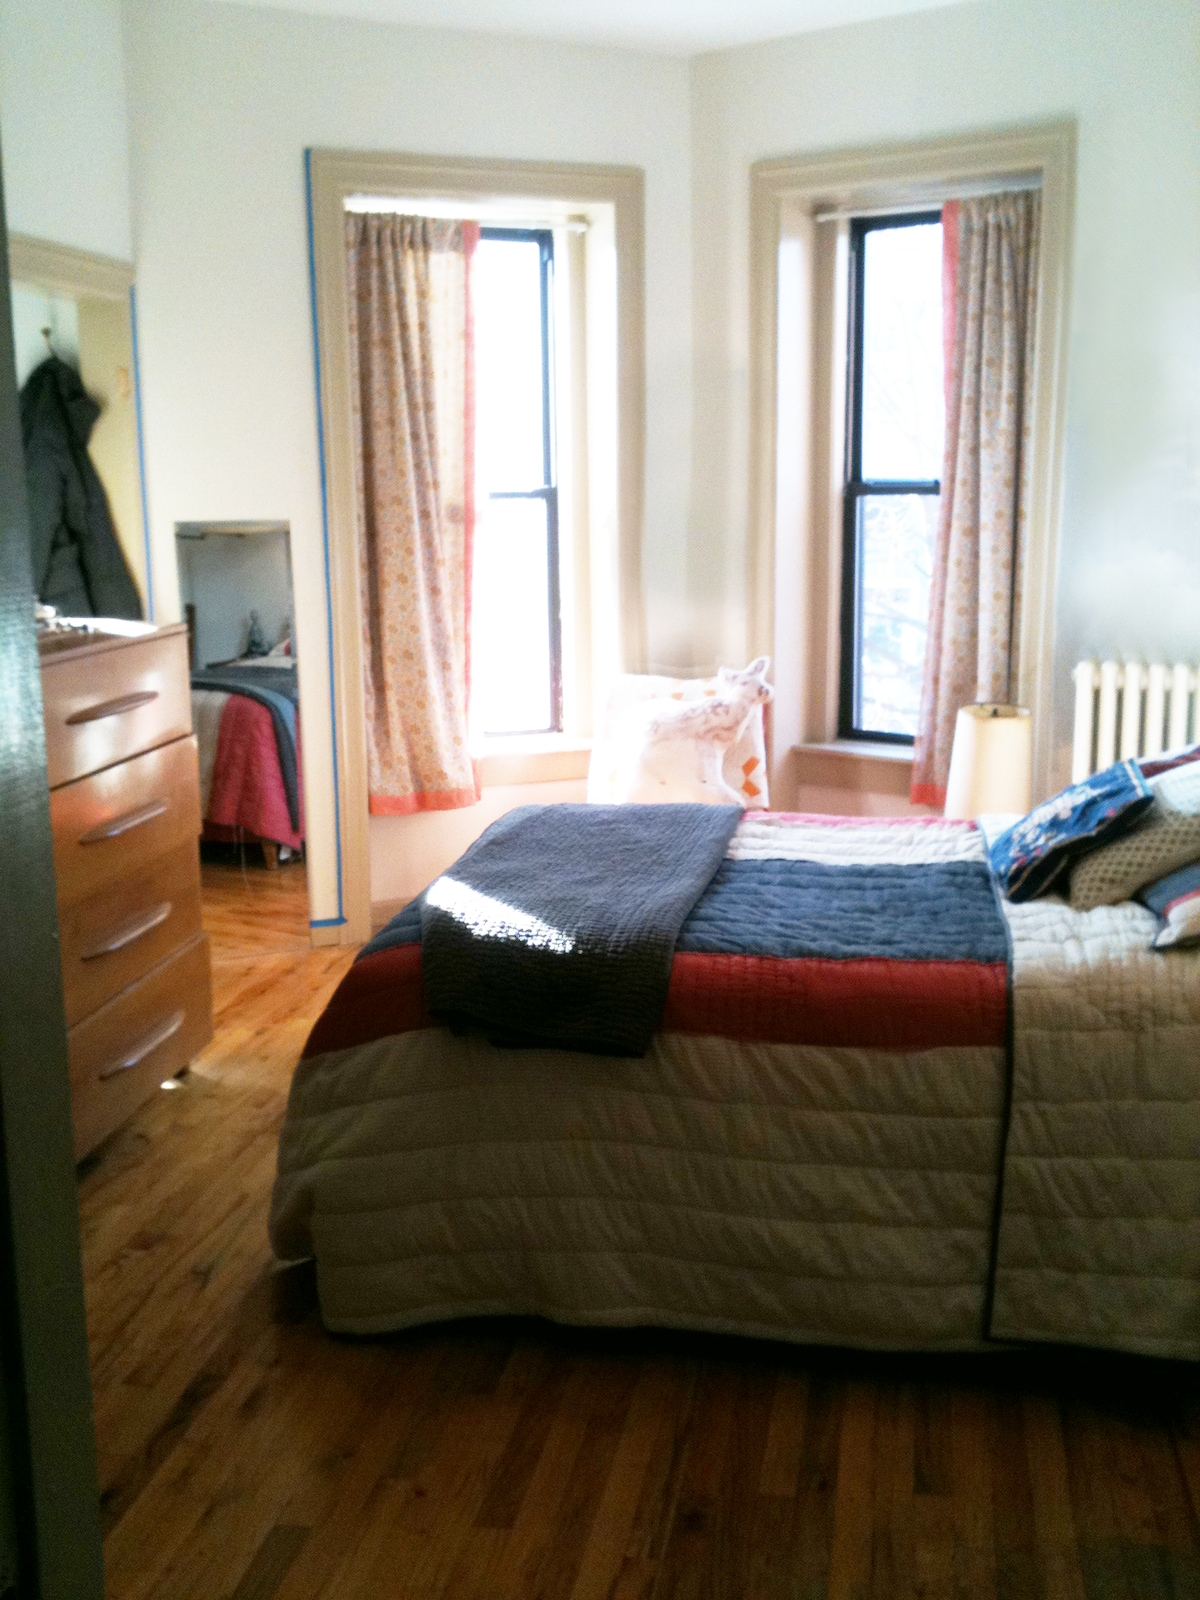 Bedroom has a HUGE walk-in closet and full bed, super comfortable with high-end bedding